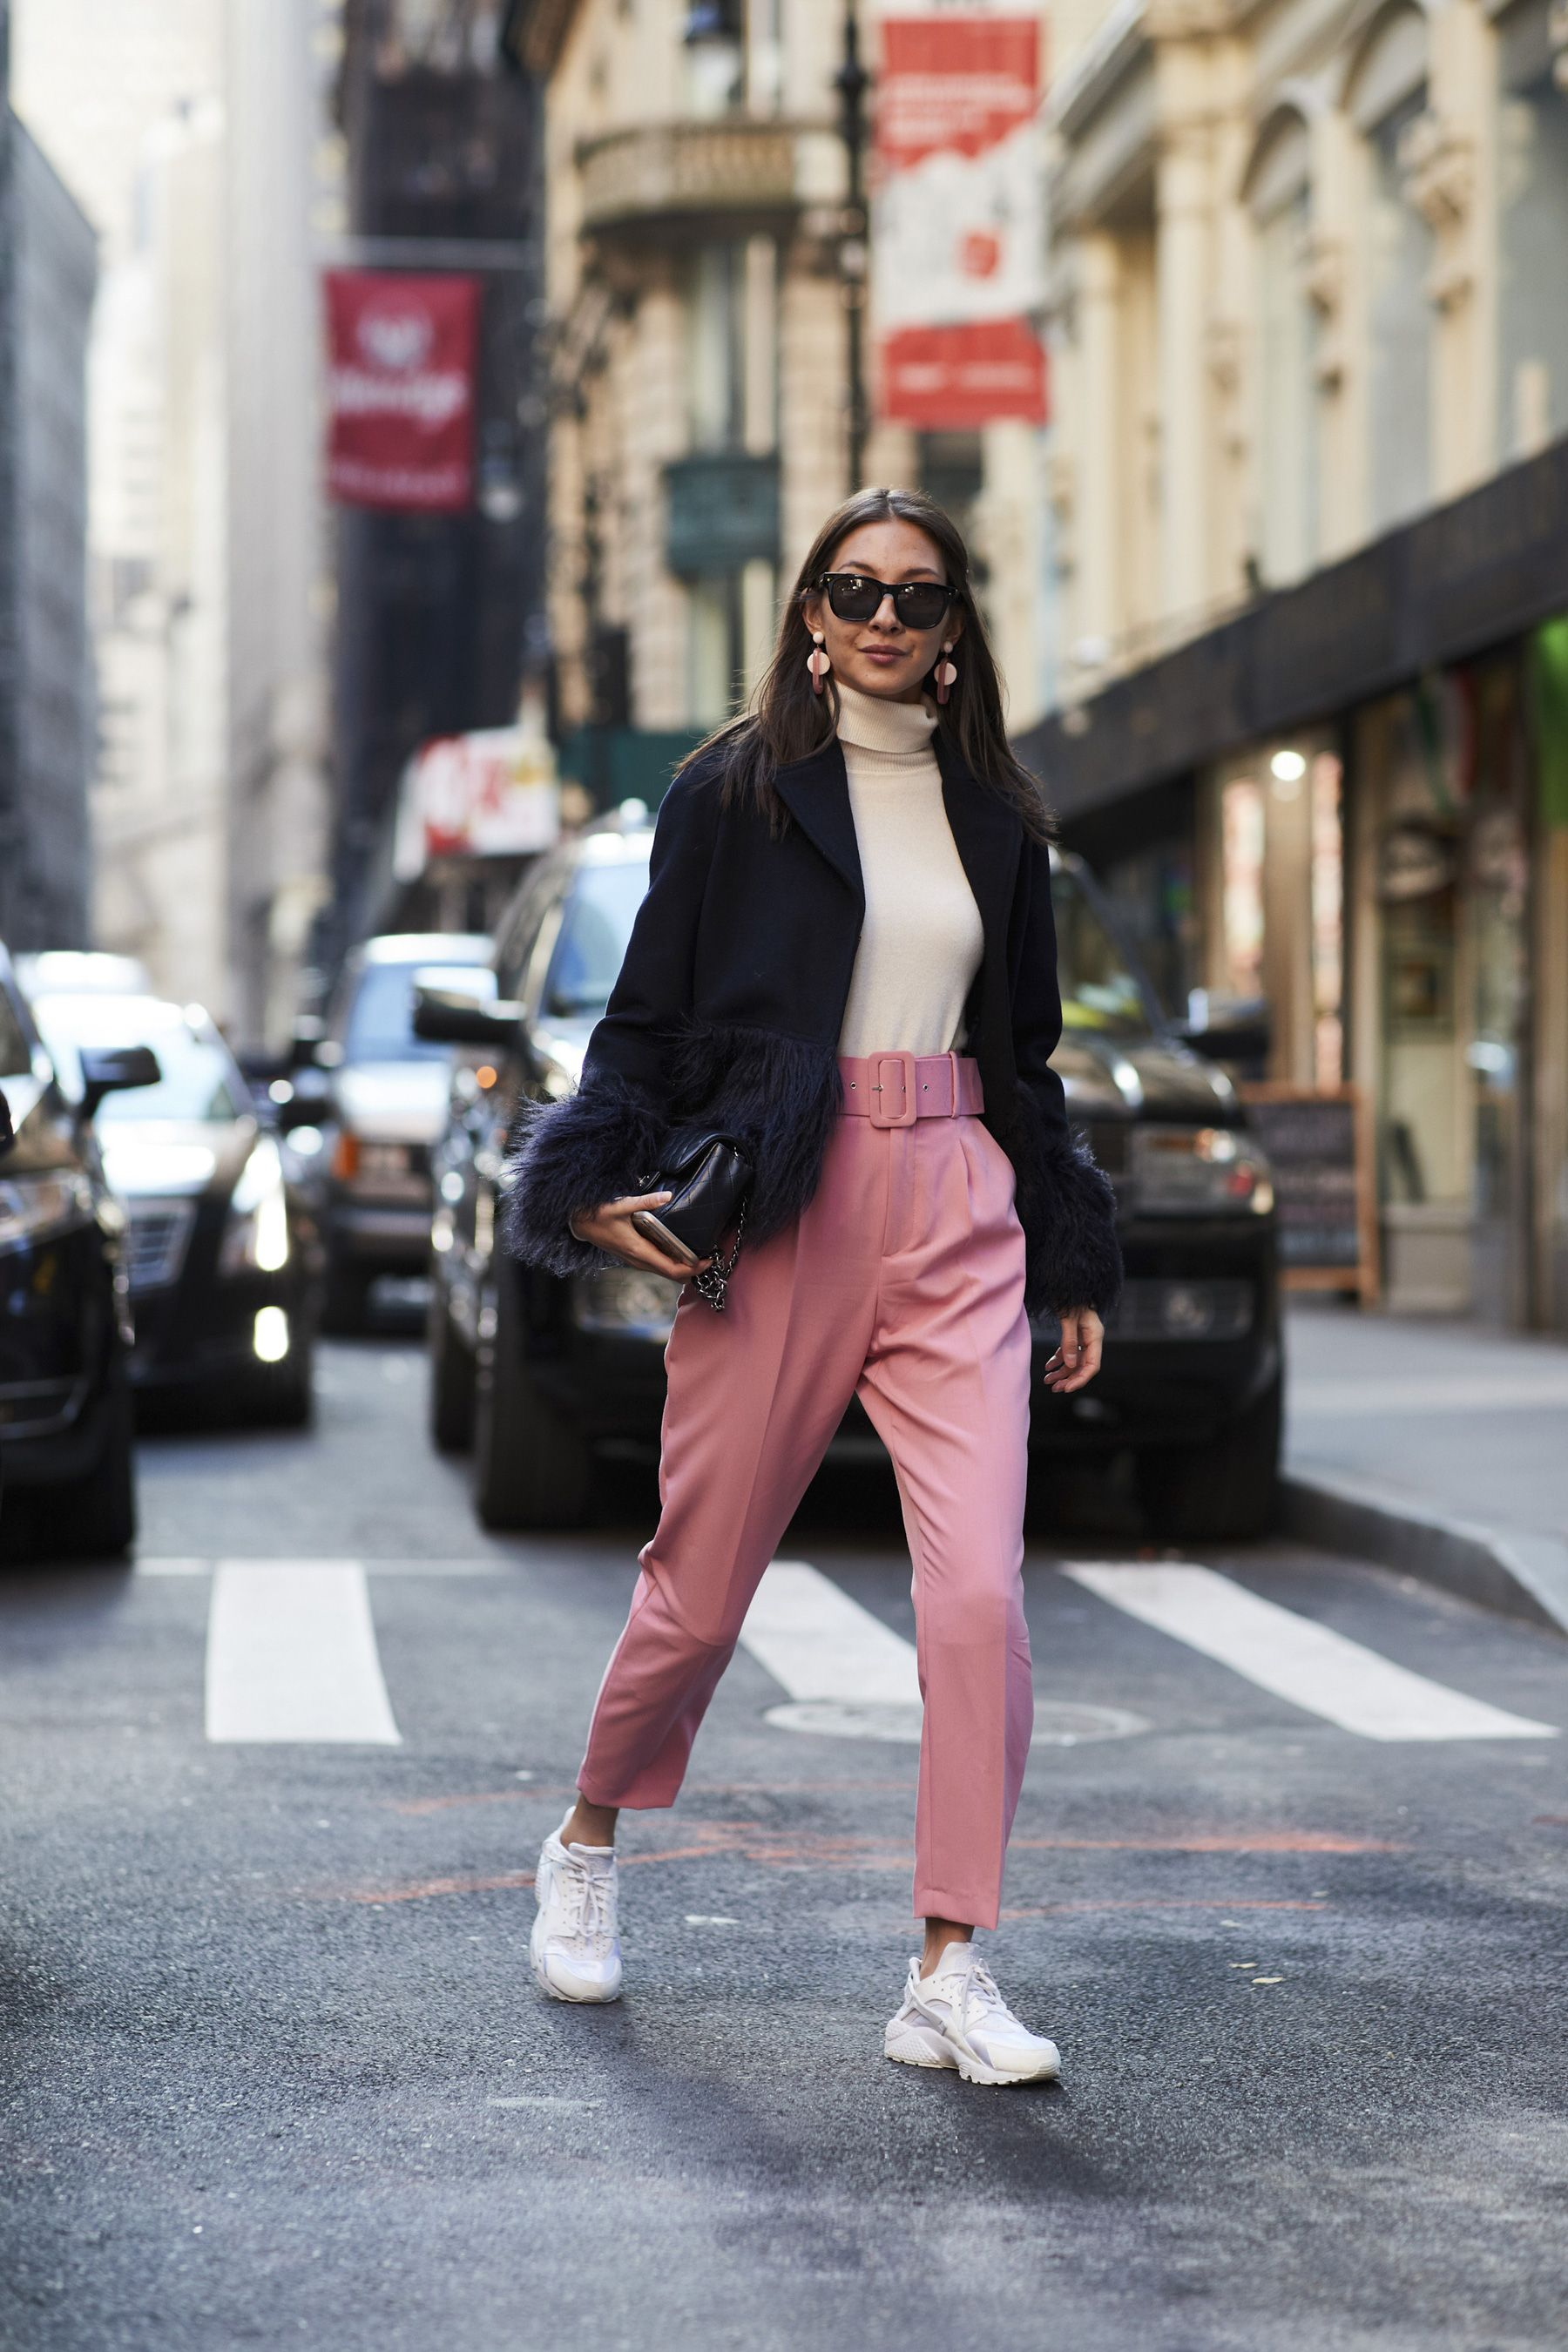 reputable site 4ff5d 465a4 New York Fashion Week Street Style Fall 2018 Day 1 Cont.